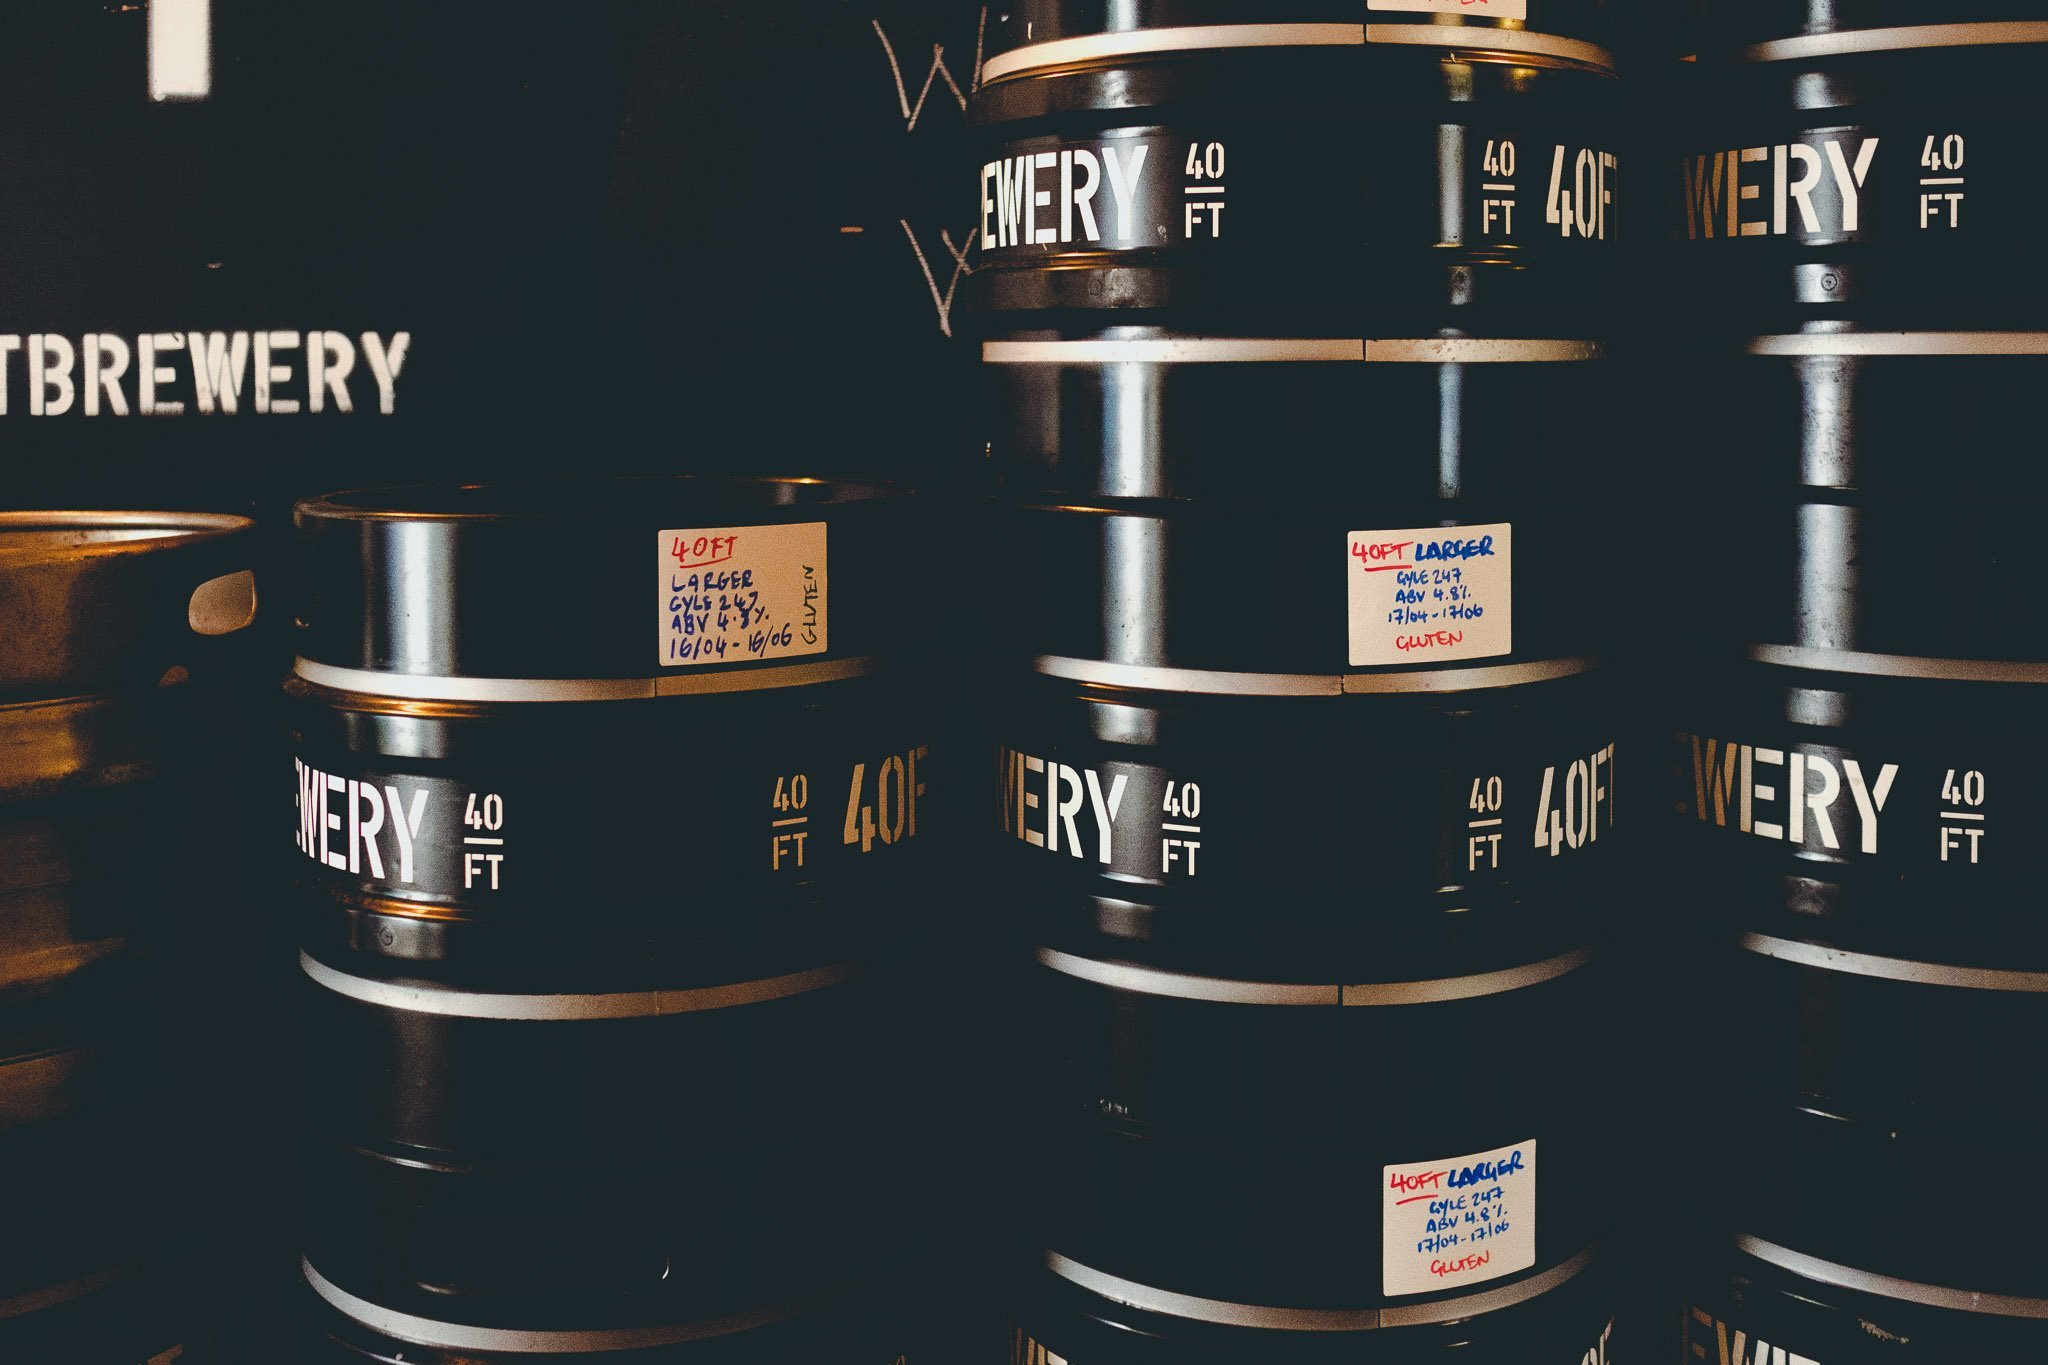 Barrels of beer at 40FT Brewery in Dalston London